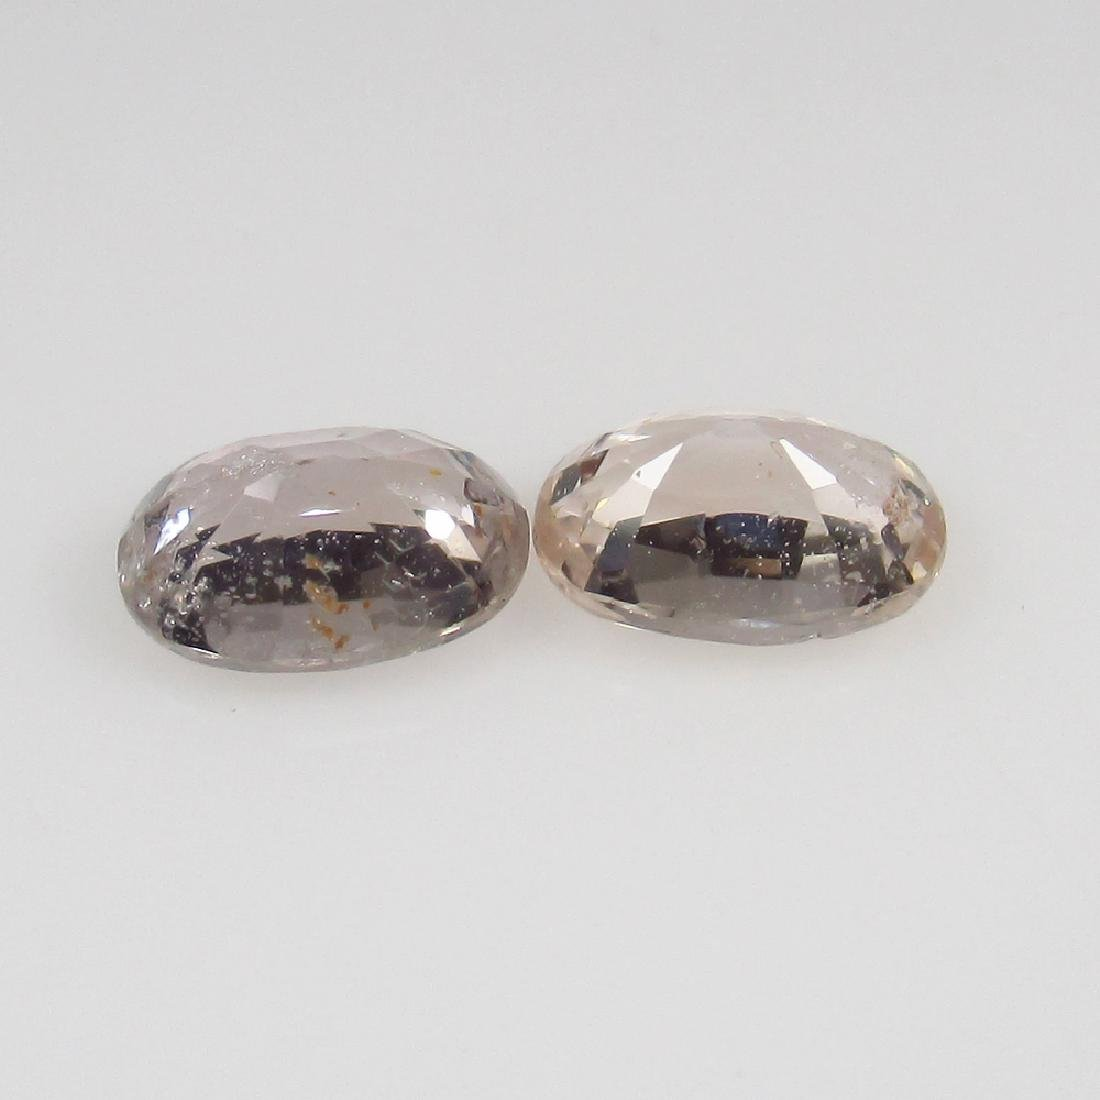 1.47 Ct Genuine Ceylon Light Brown Sapphire Nice Oval - 2